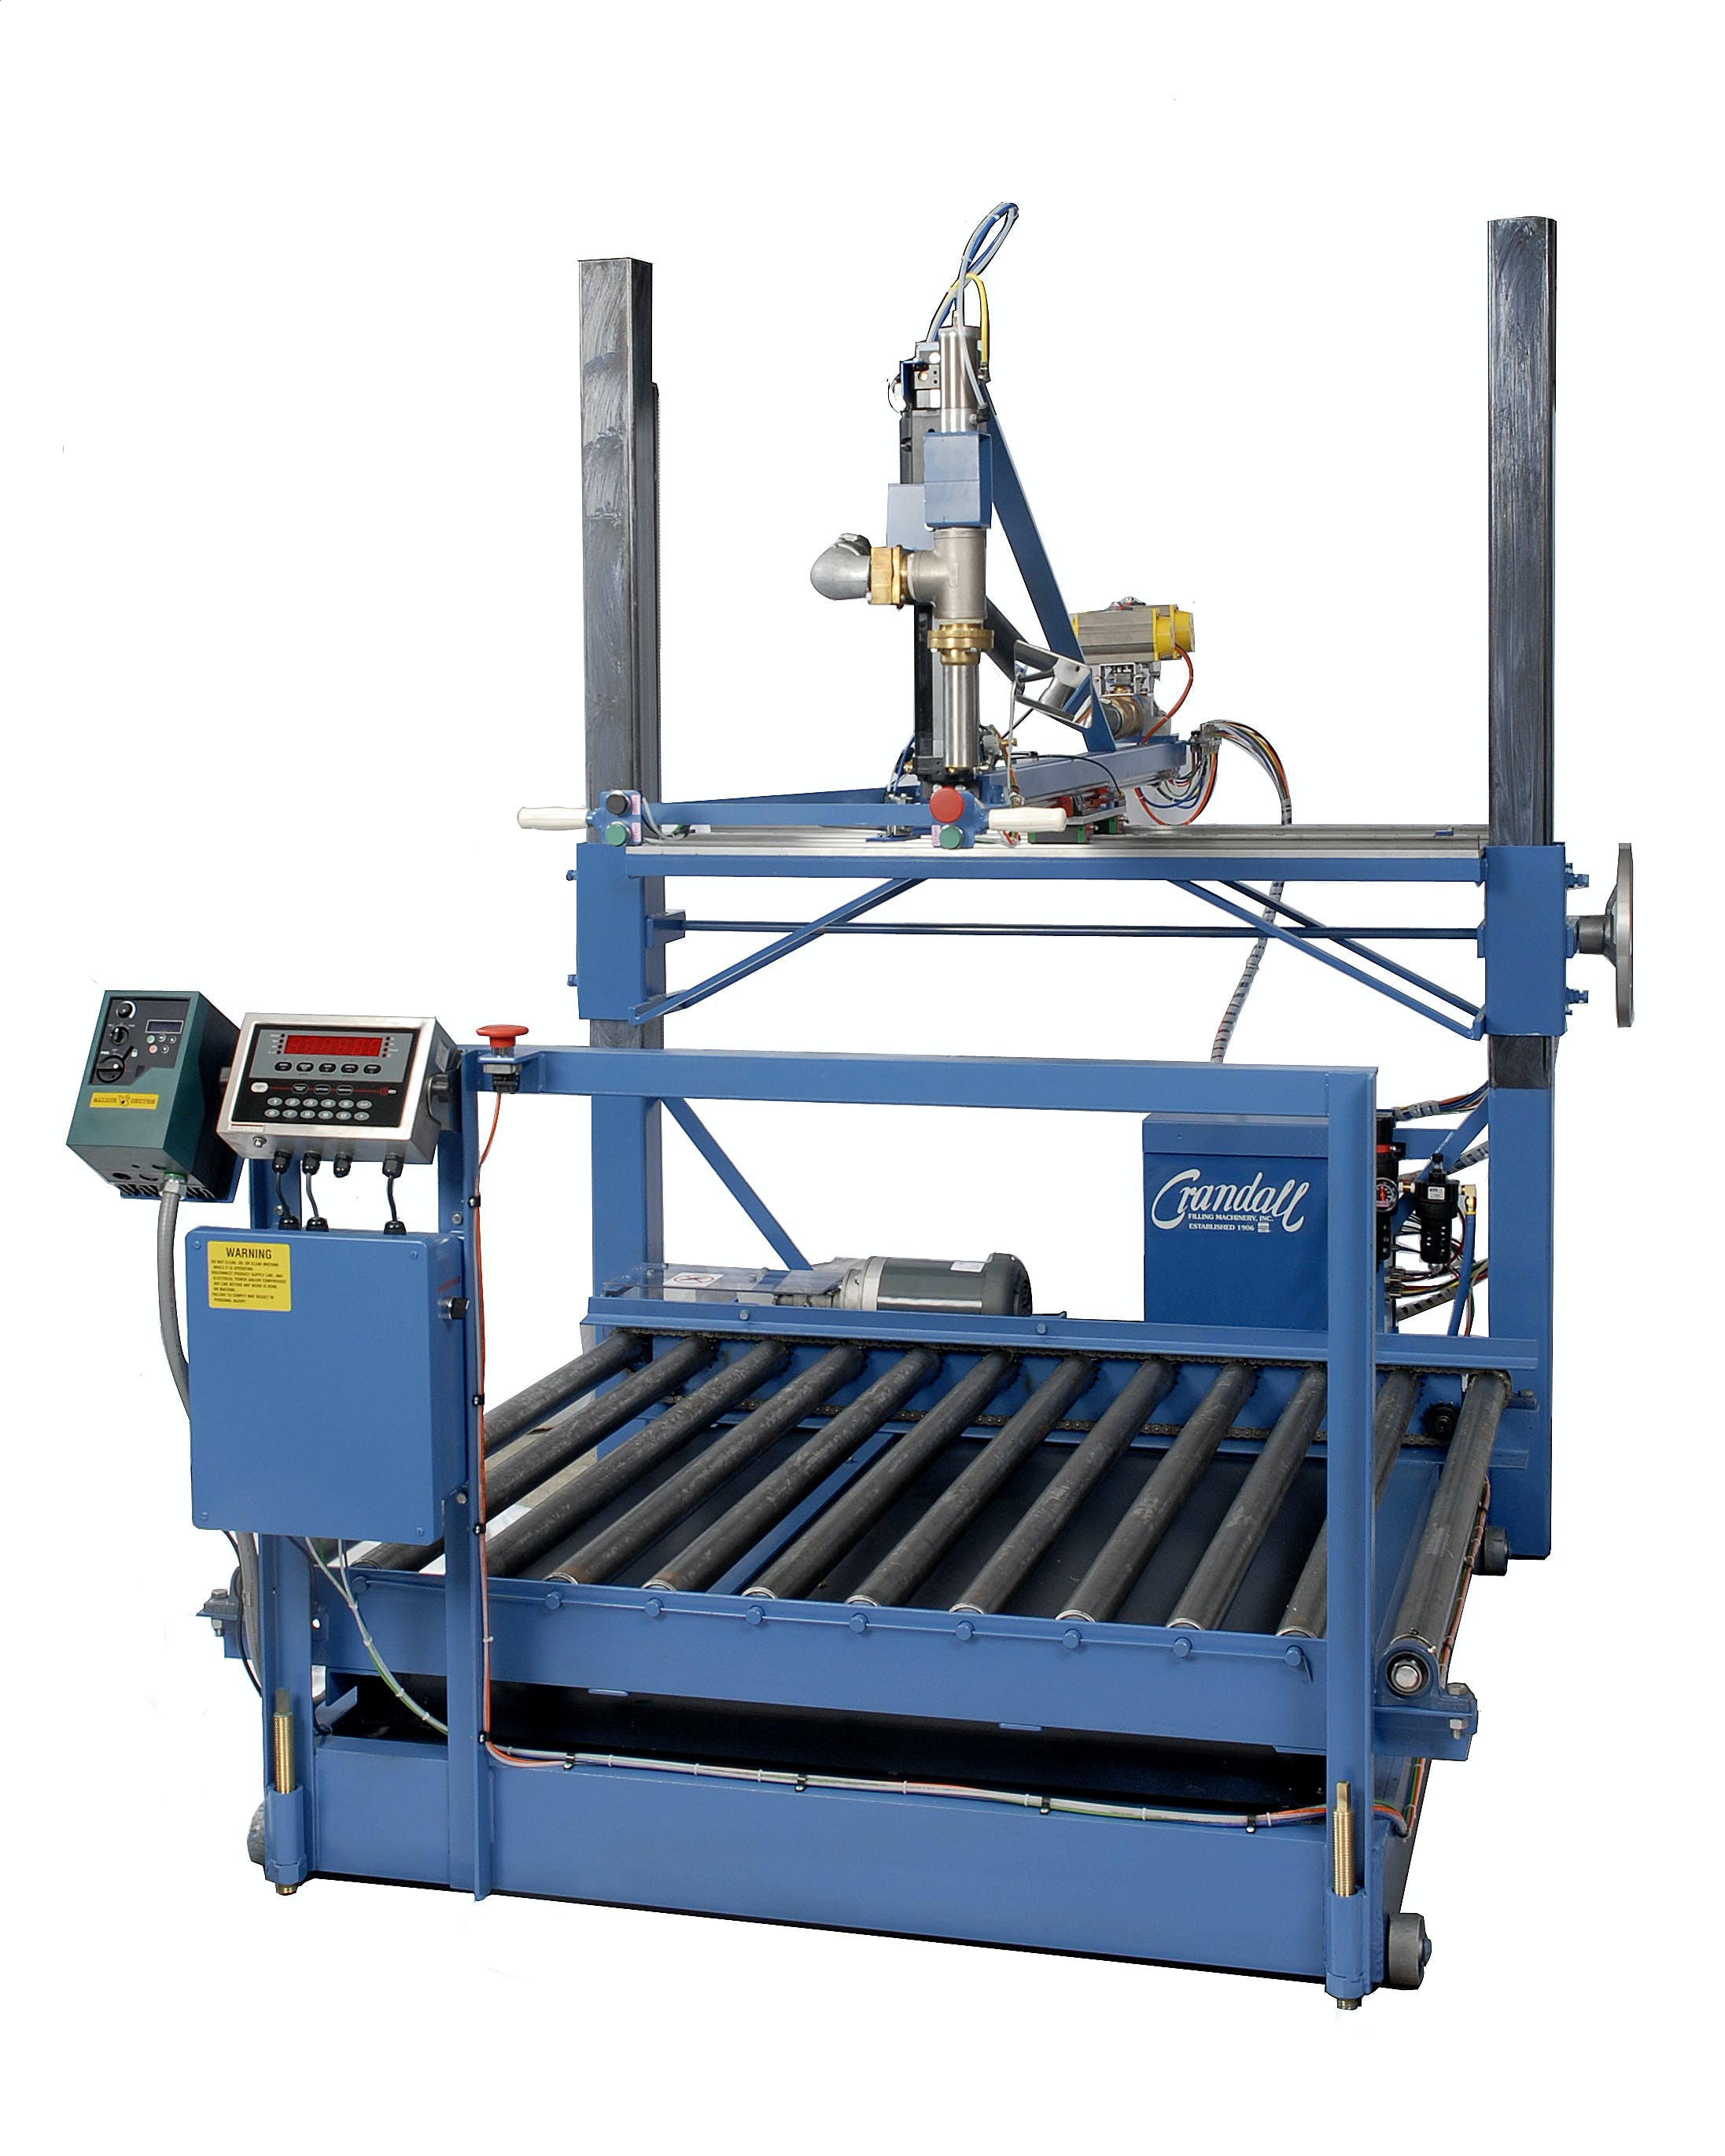 ET1/4x Drum filling machine Net weight filler sold by Crandall Filling Machinery, Inc.